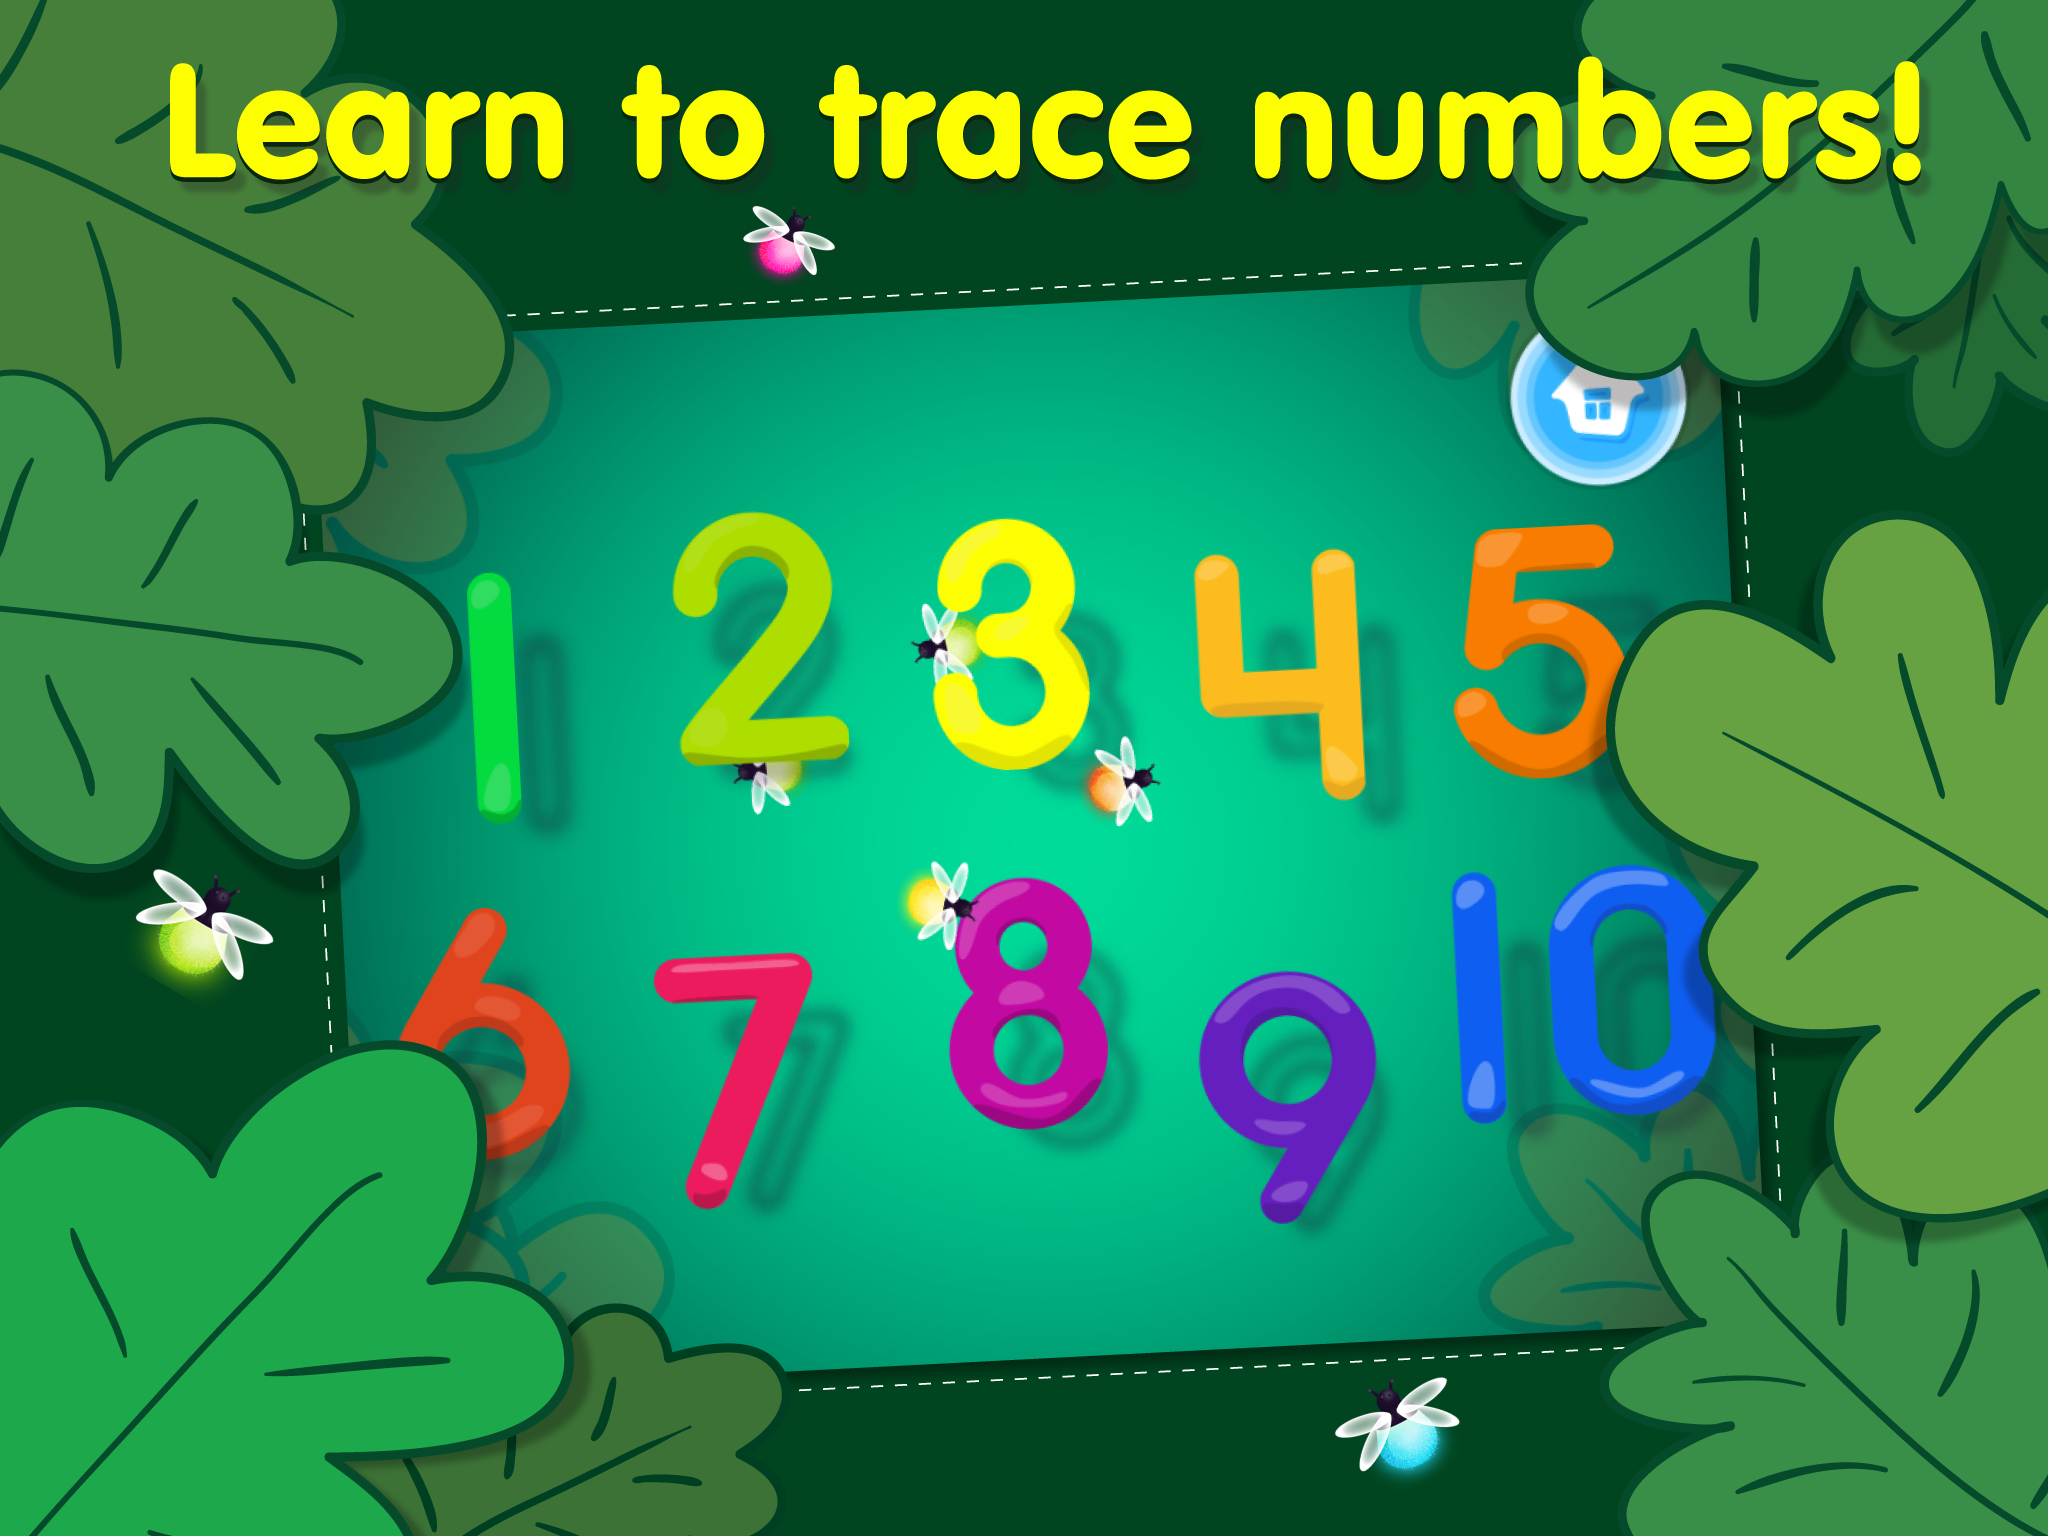 Learn to trace 123